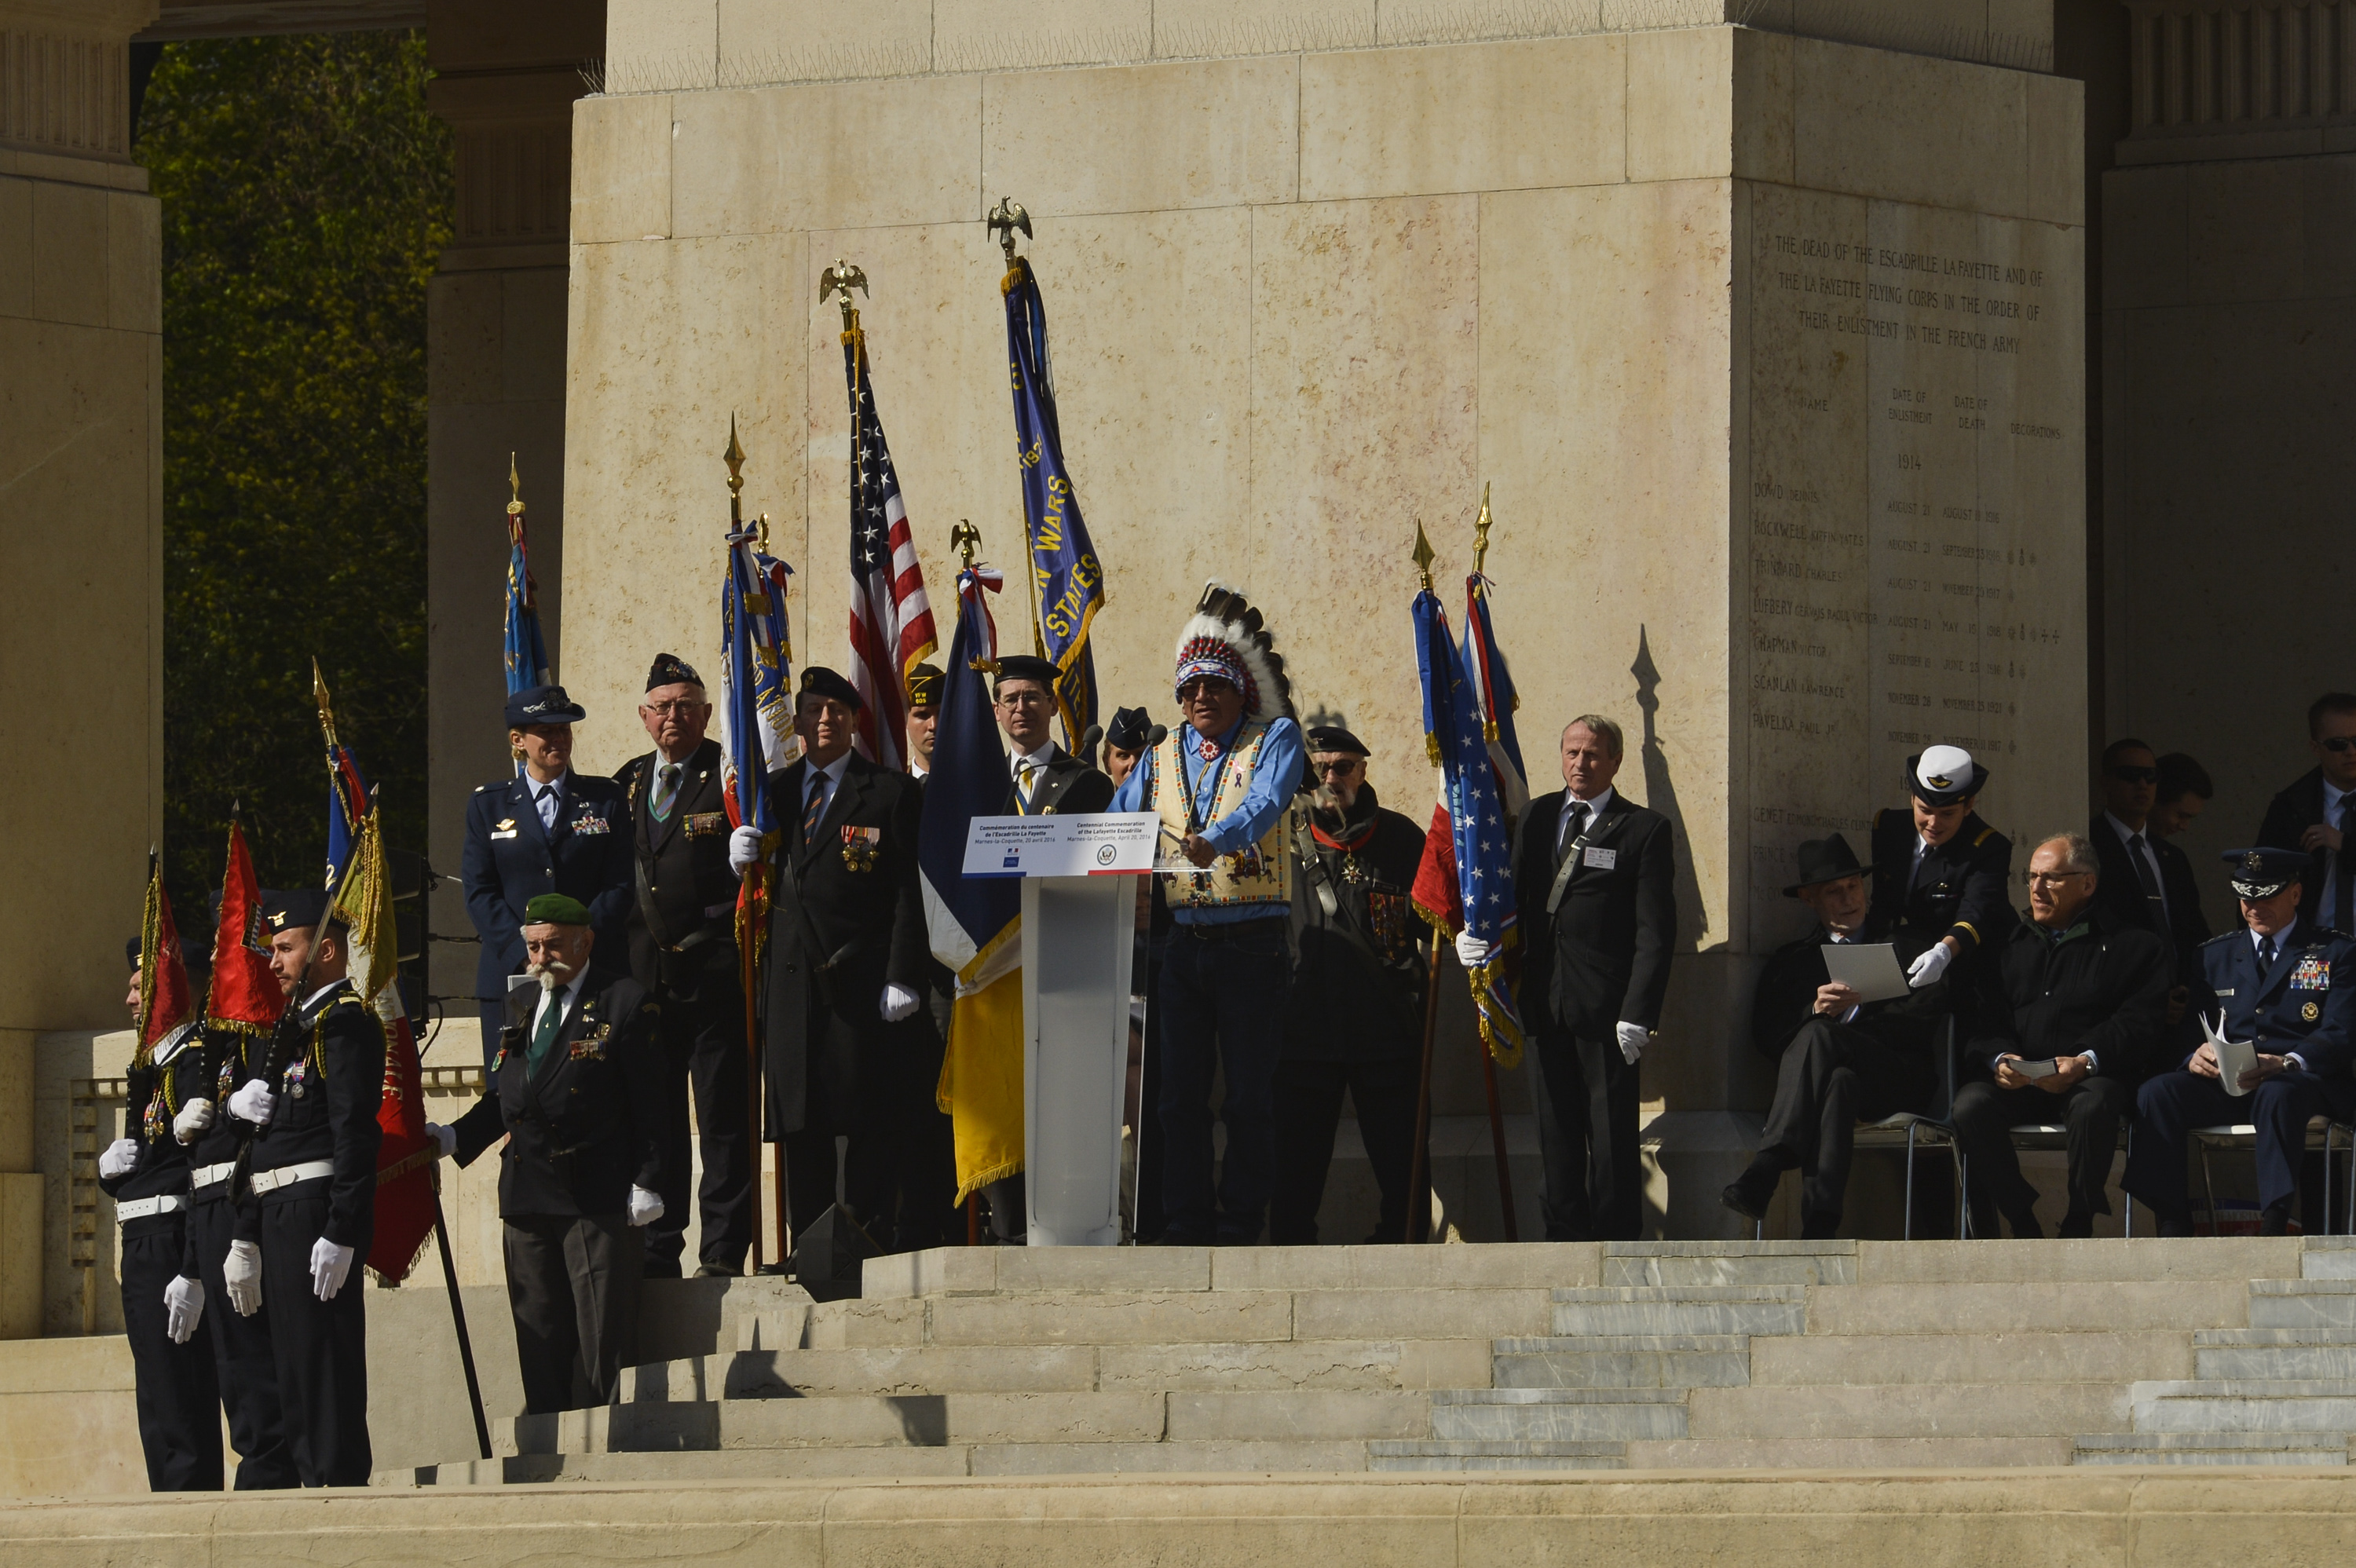 John Yellow Bird Steele, representing the Sioux Nation, offers a traditional Native American incantation during the Lafayette Escadrille Memorial 100th anniversary ceremony in Marnes-la-Coquette, France, April 20, 2016. More than 200 Americans flew with France in the Lafayette Flying Corps prior to U.S. entry into World War I. Airmen from the U.S. Air Force and their French counterparts, along with civilians from both countries attended the ceremony to honor the men who served and the sacrifices of the 68 American airmen who died fighting with the French in World War I. The memorial highlights the 238-year alliance between the U.S. and France with their long history of shared values and sacrifice. (U.S. Air Force Photo by Tech. Sgt. Joshua DeMotts/Released)